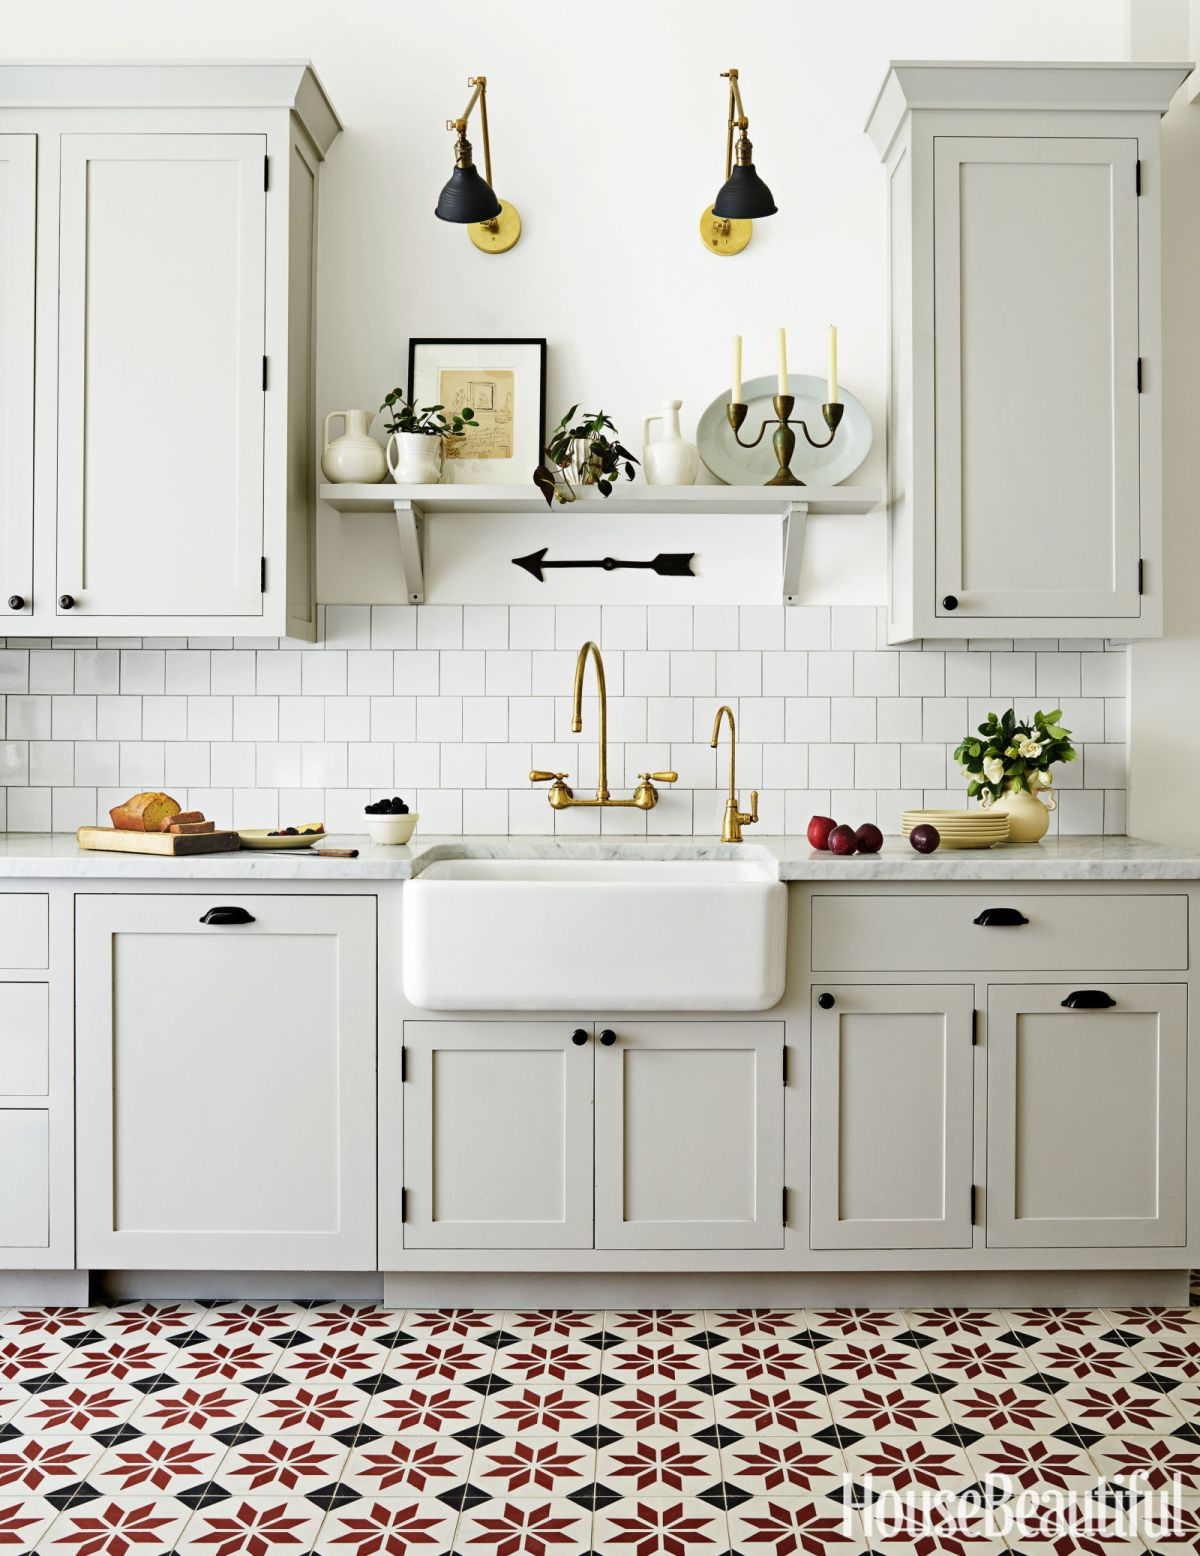 how to clean kitchen wall tiles